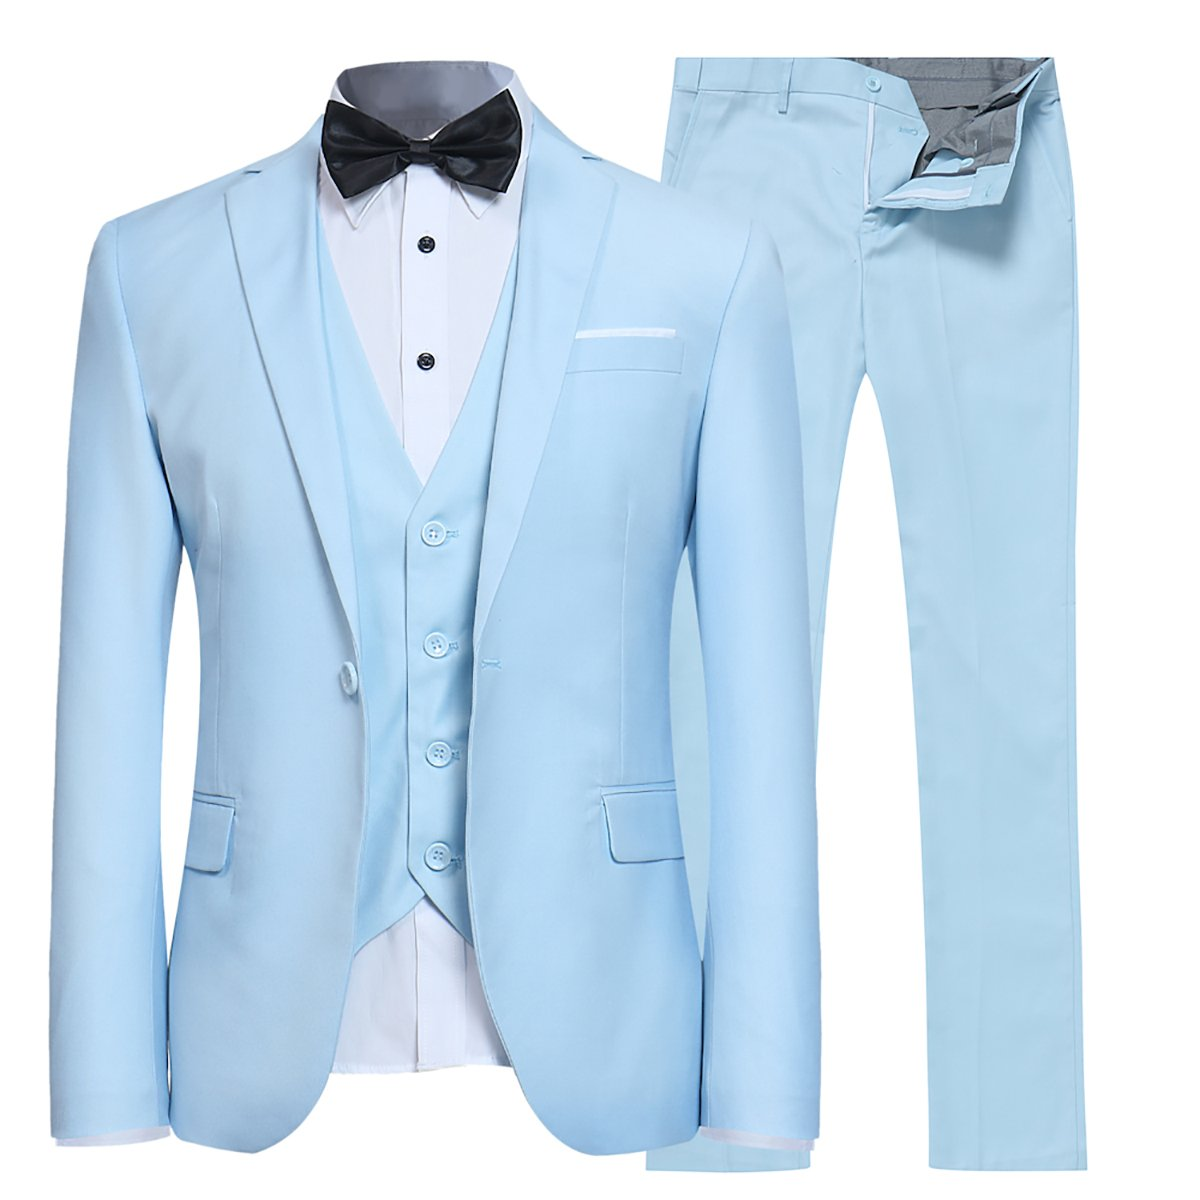 Mens Suits 3 Pieces Fitted Cut Classic Style One Button Formal Suits EHXZ03